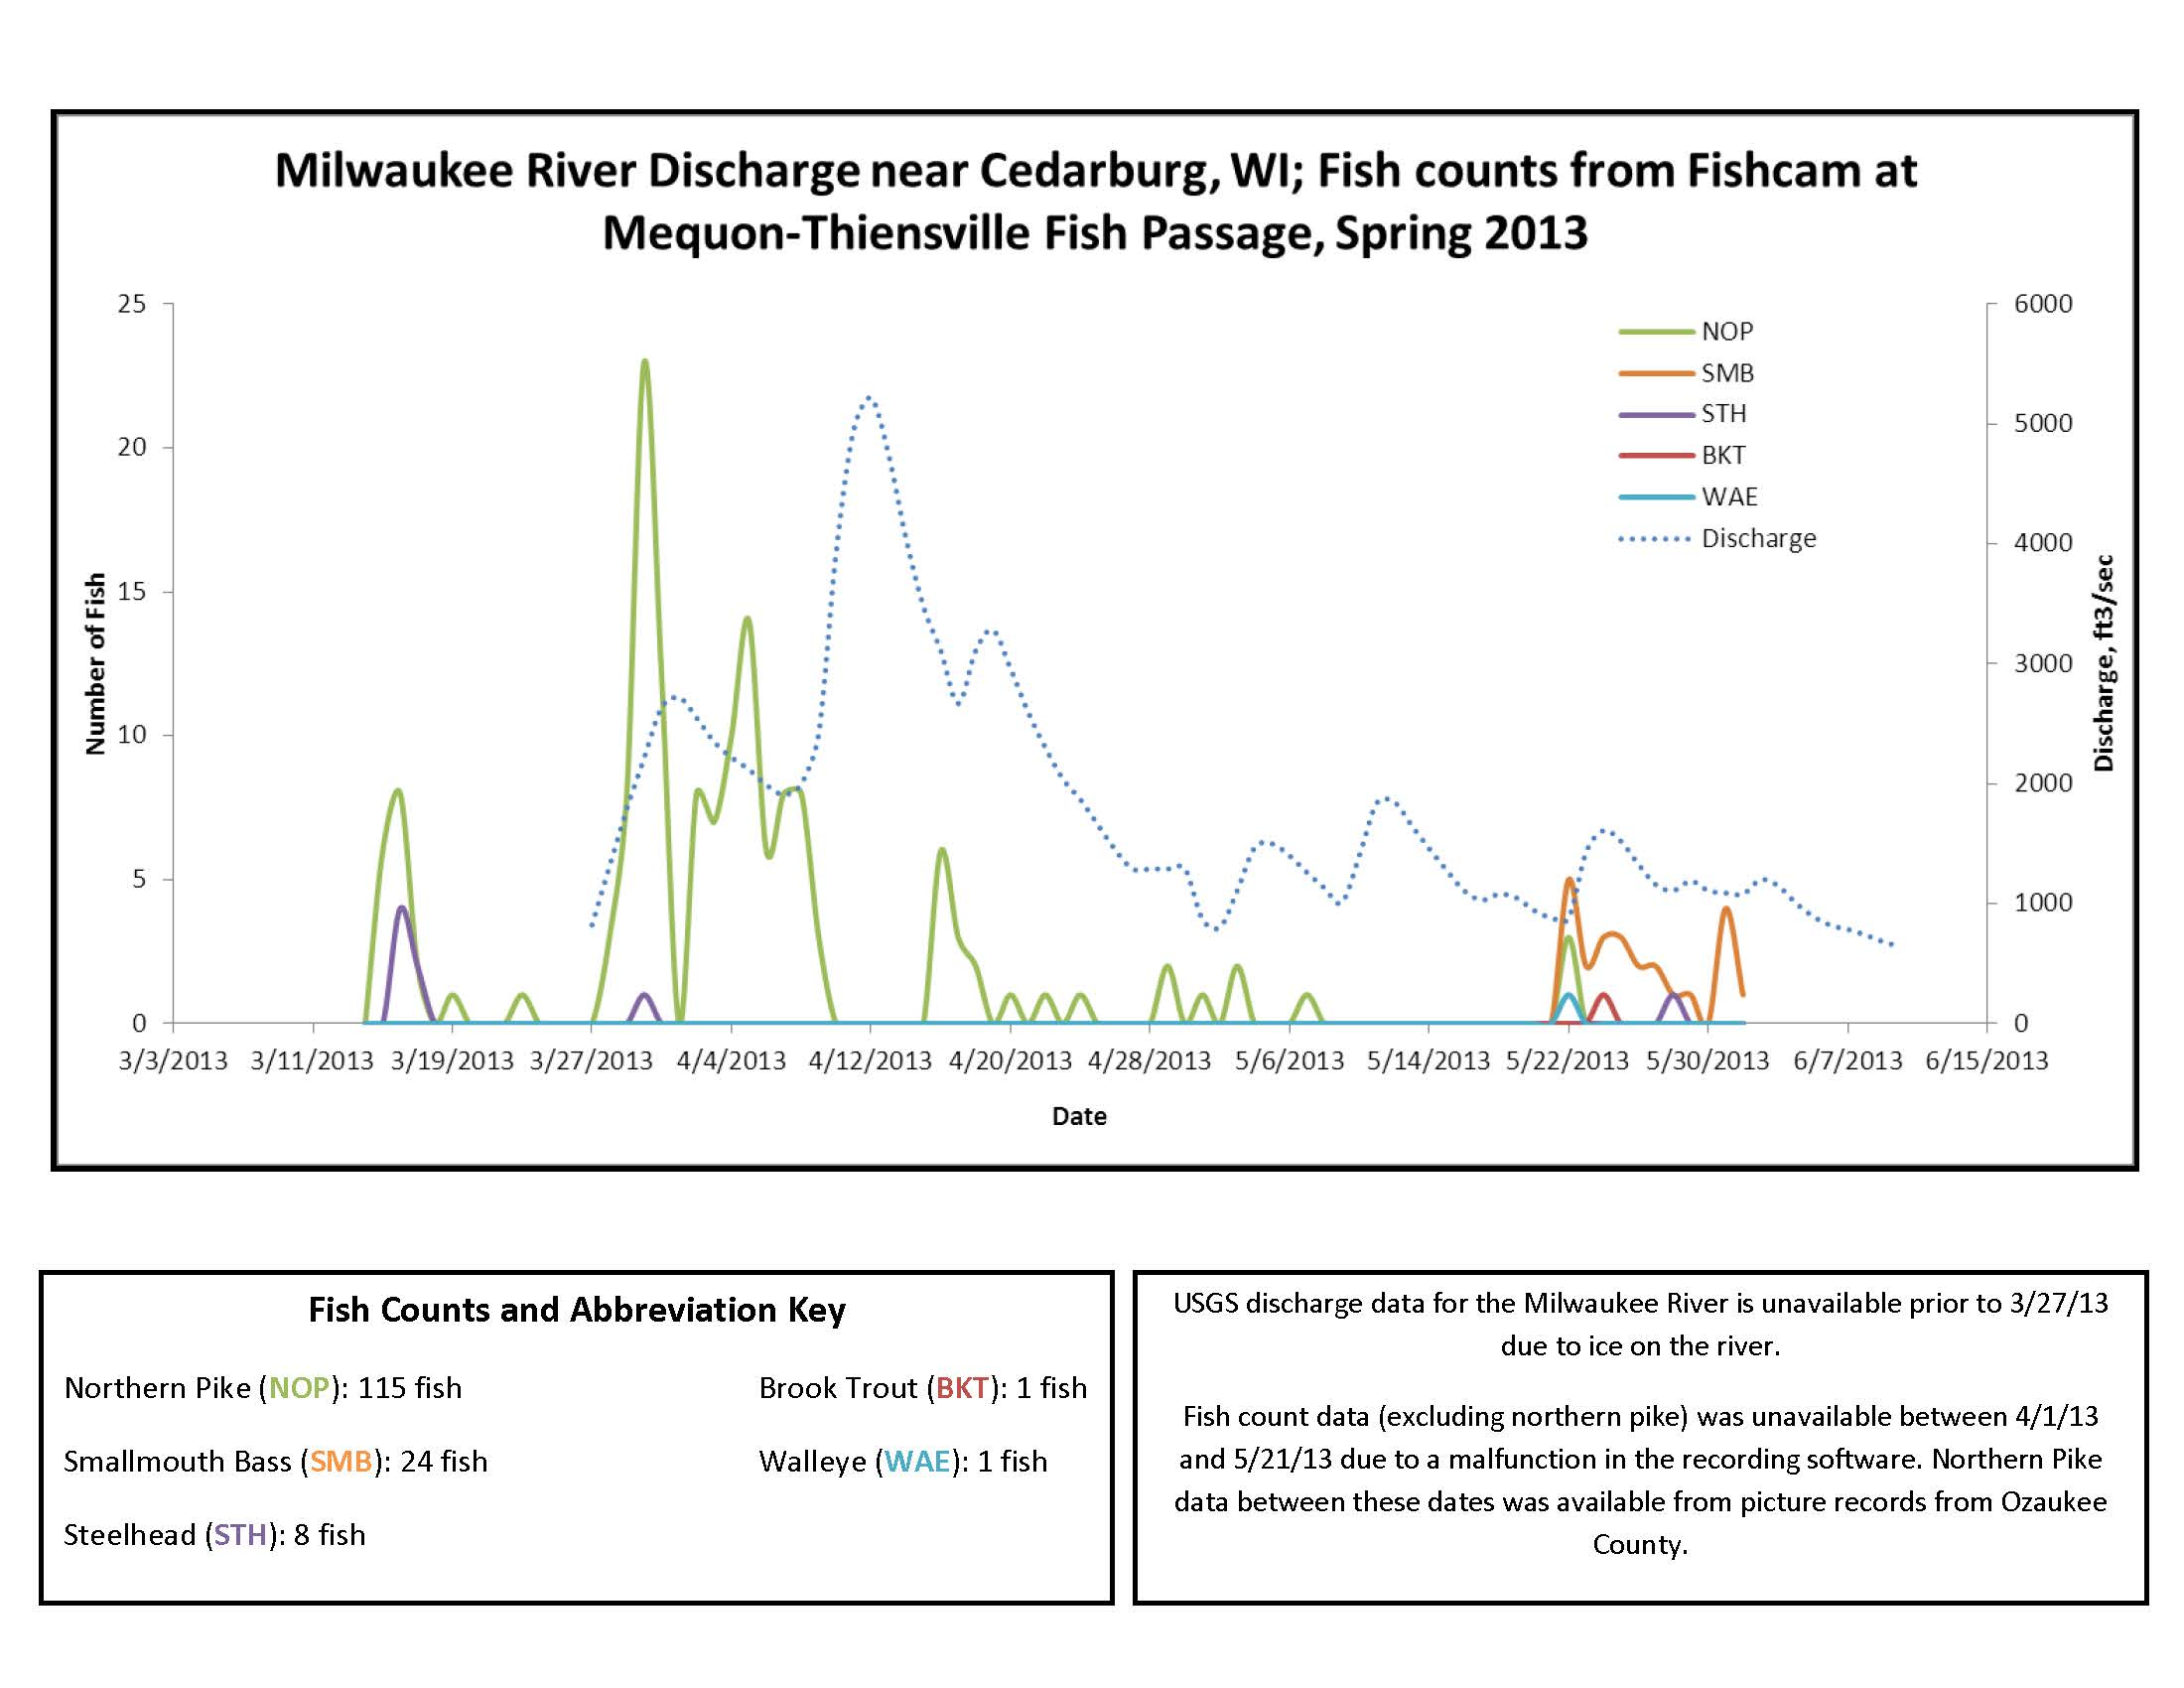 Fish counts and river discharge spring 2013